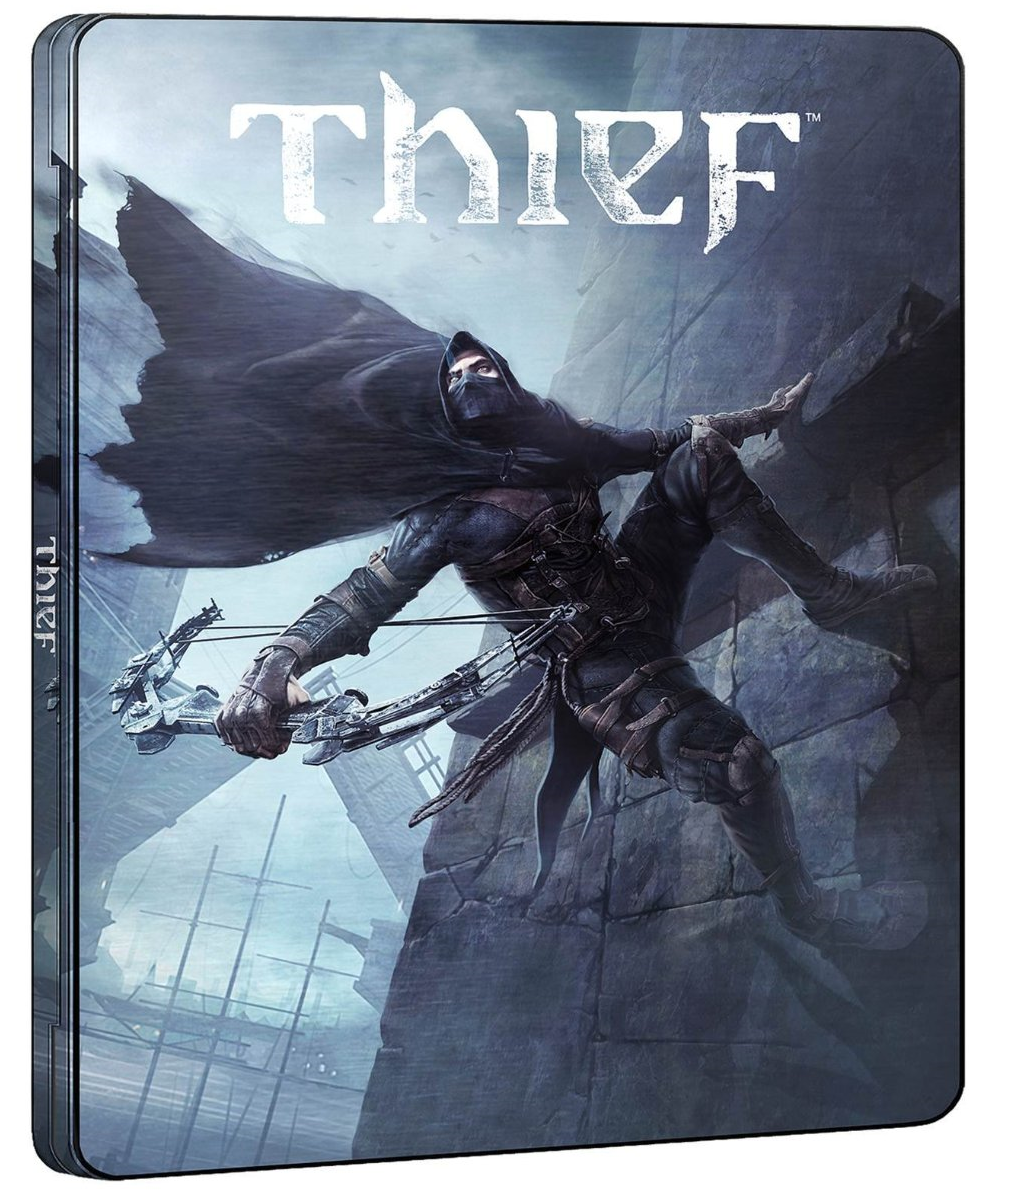 XONE Thief Limited Edition Steelbook